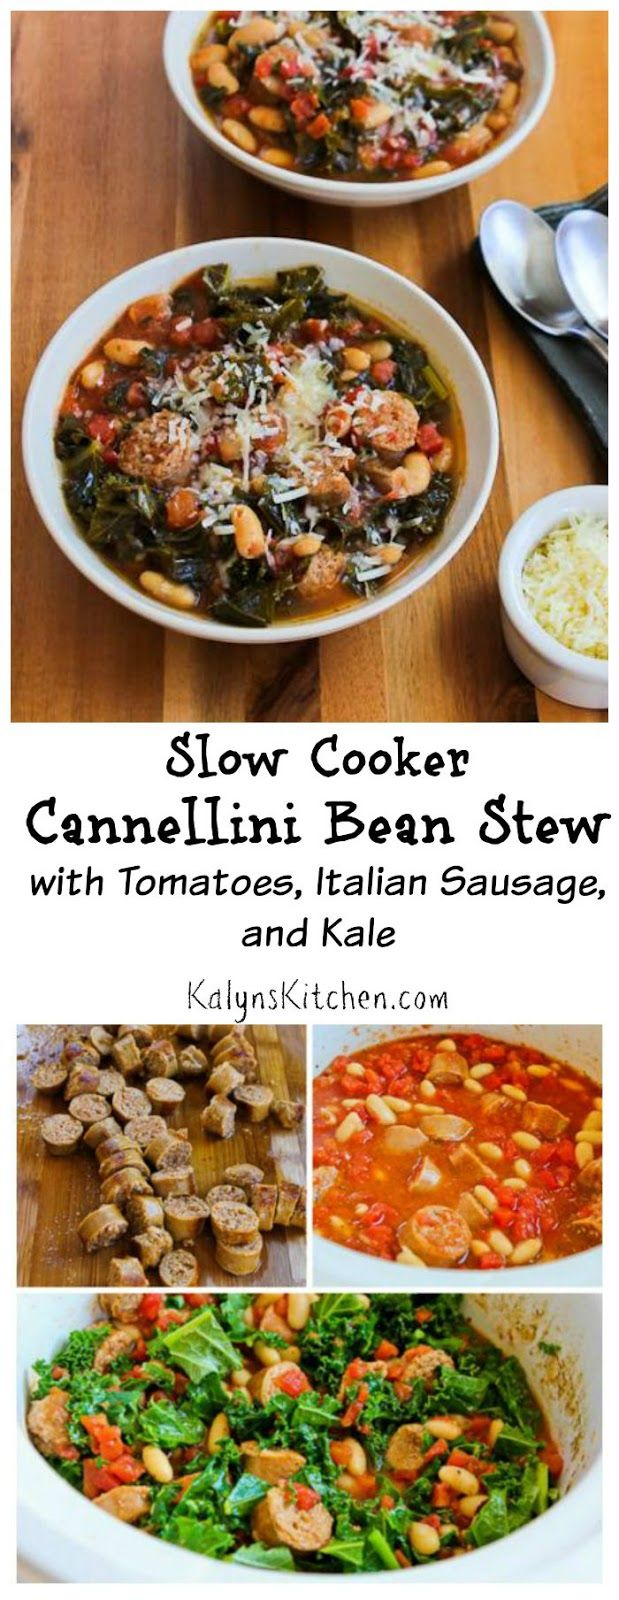 This Slow Cooker Cannellini Bean Stew with Tomatoes, Italian Sausage ...